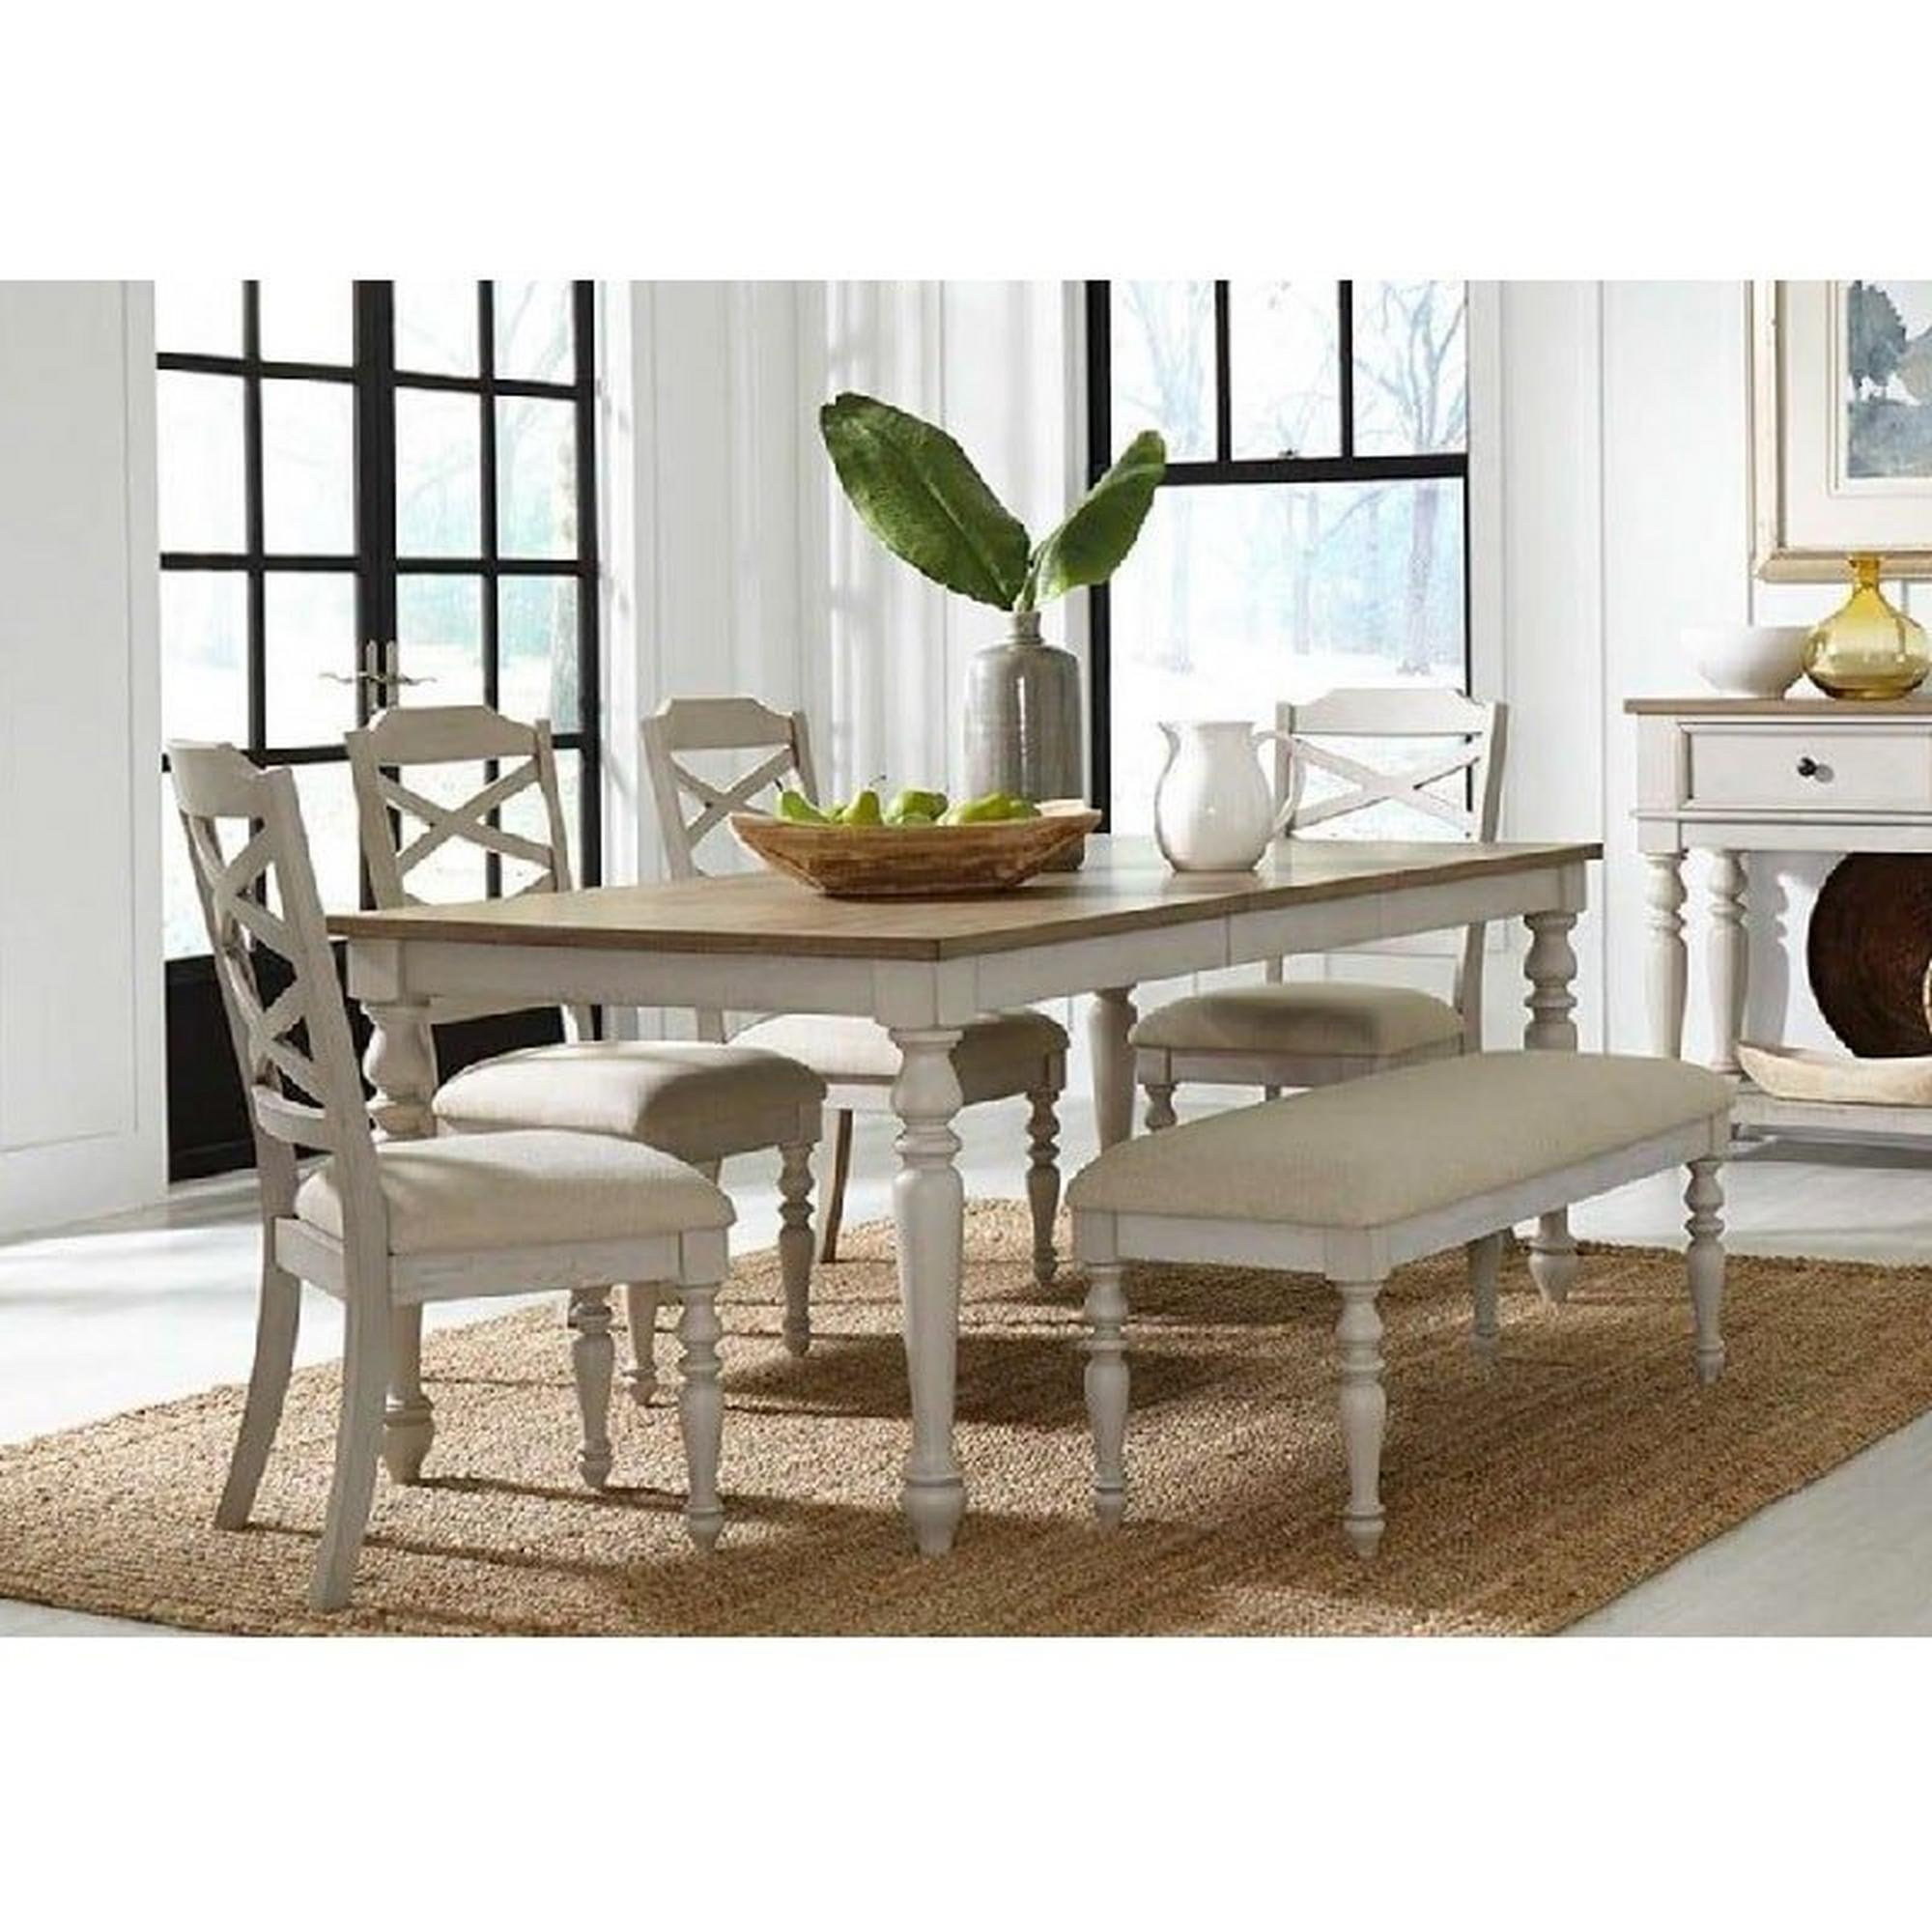 Larson Ii Dining Room Collection, Aarons Dining Room Sets